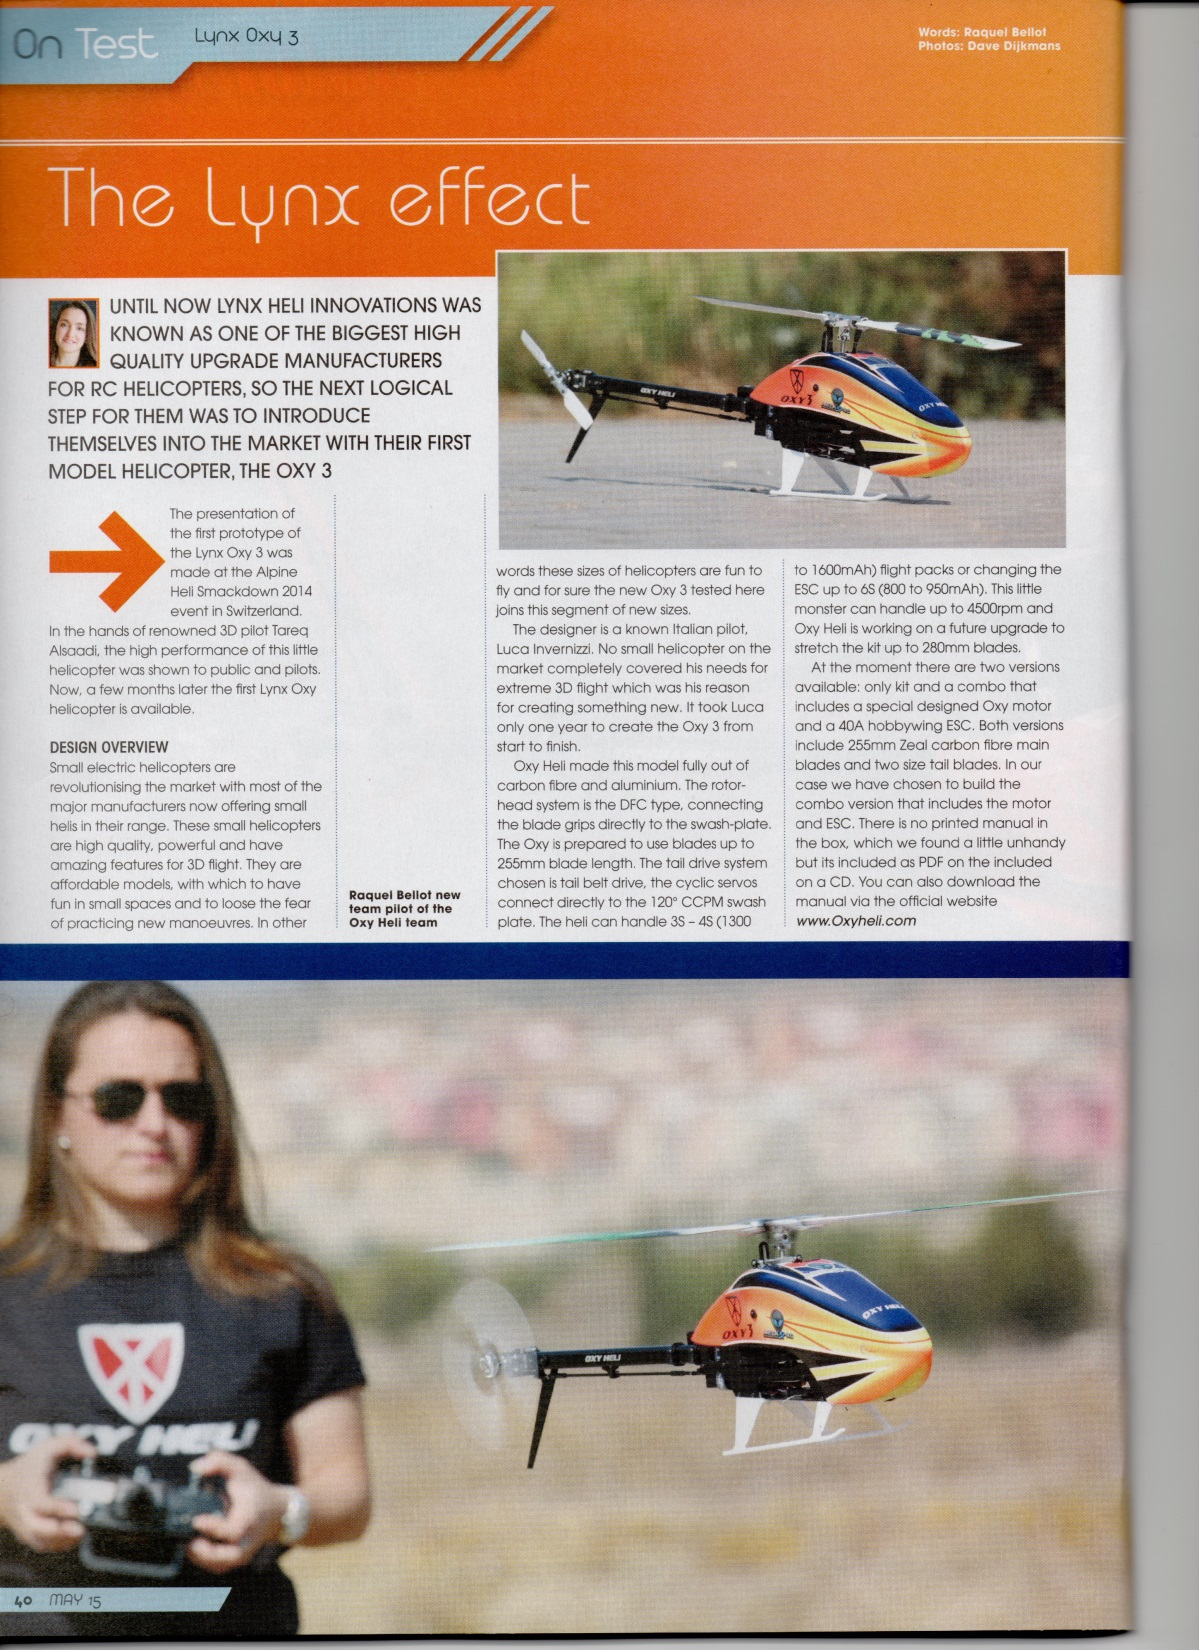 oxy 3 - oxy heli rotor world article_Page_2